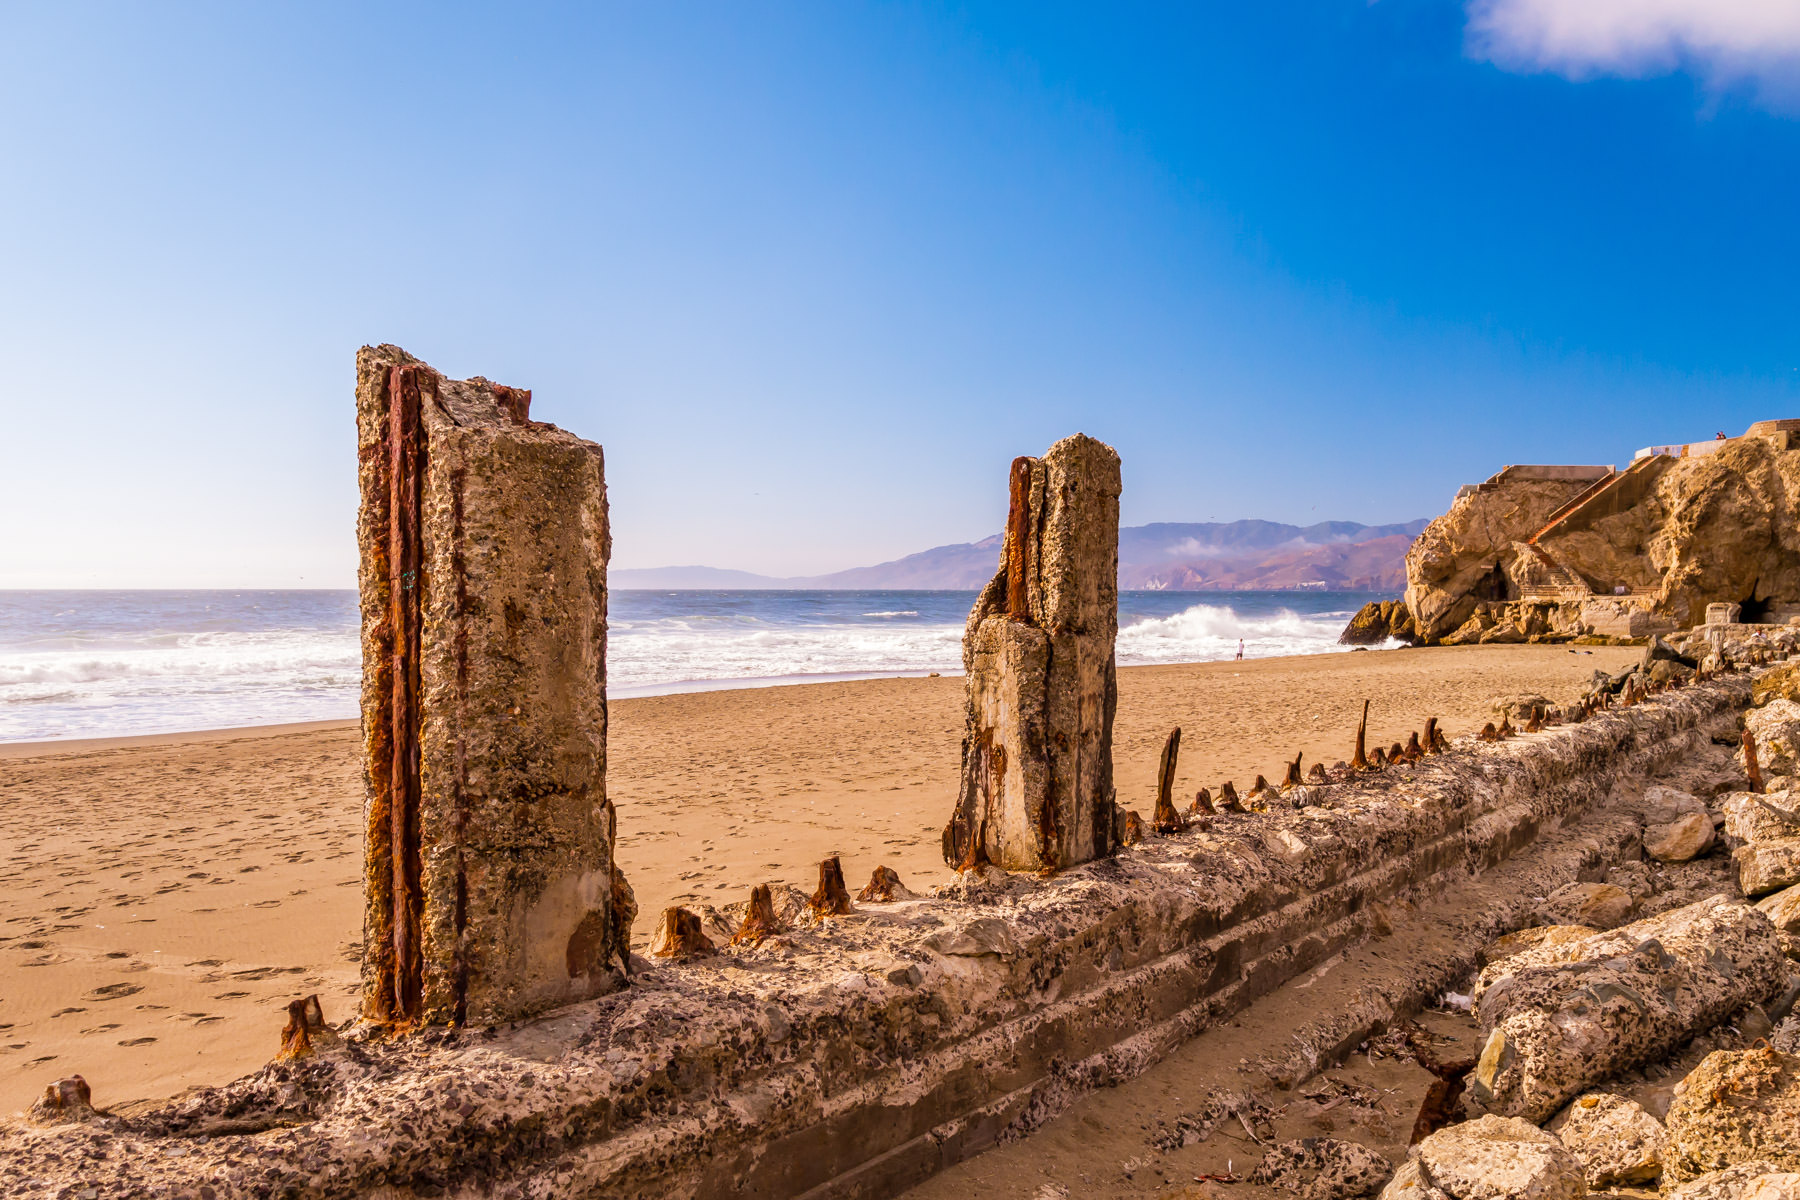 The ruins of San Francisco's Sutro Baths, once the world's largest indoor swimming pool, lie along the beach at Lands End.